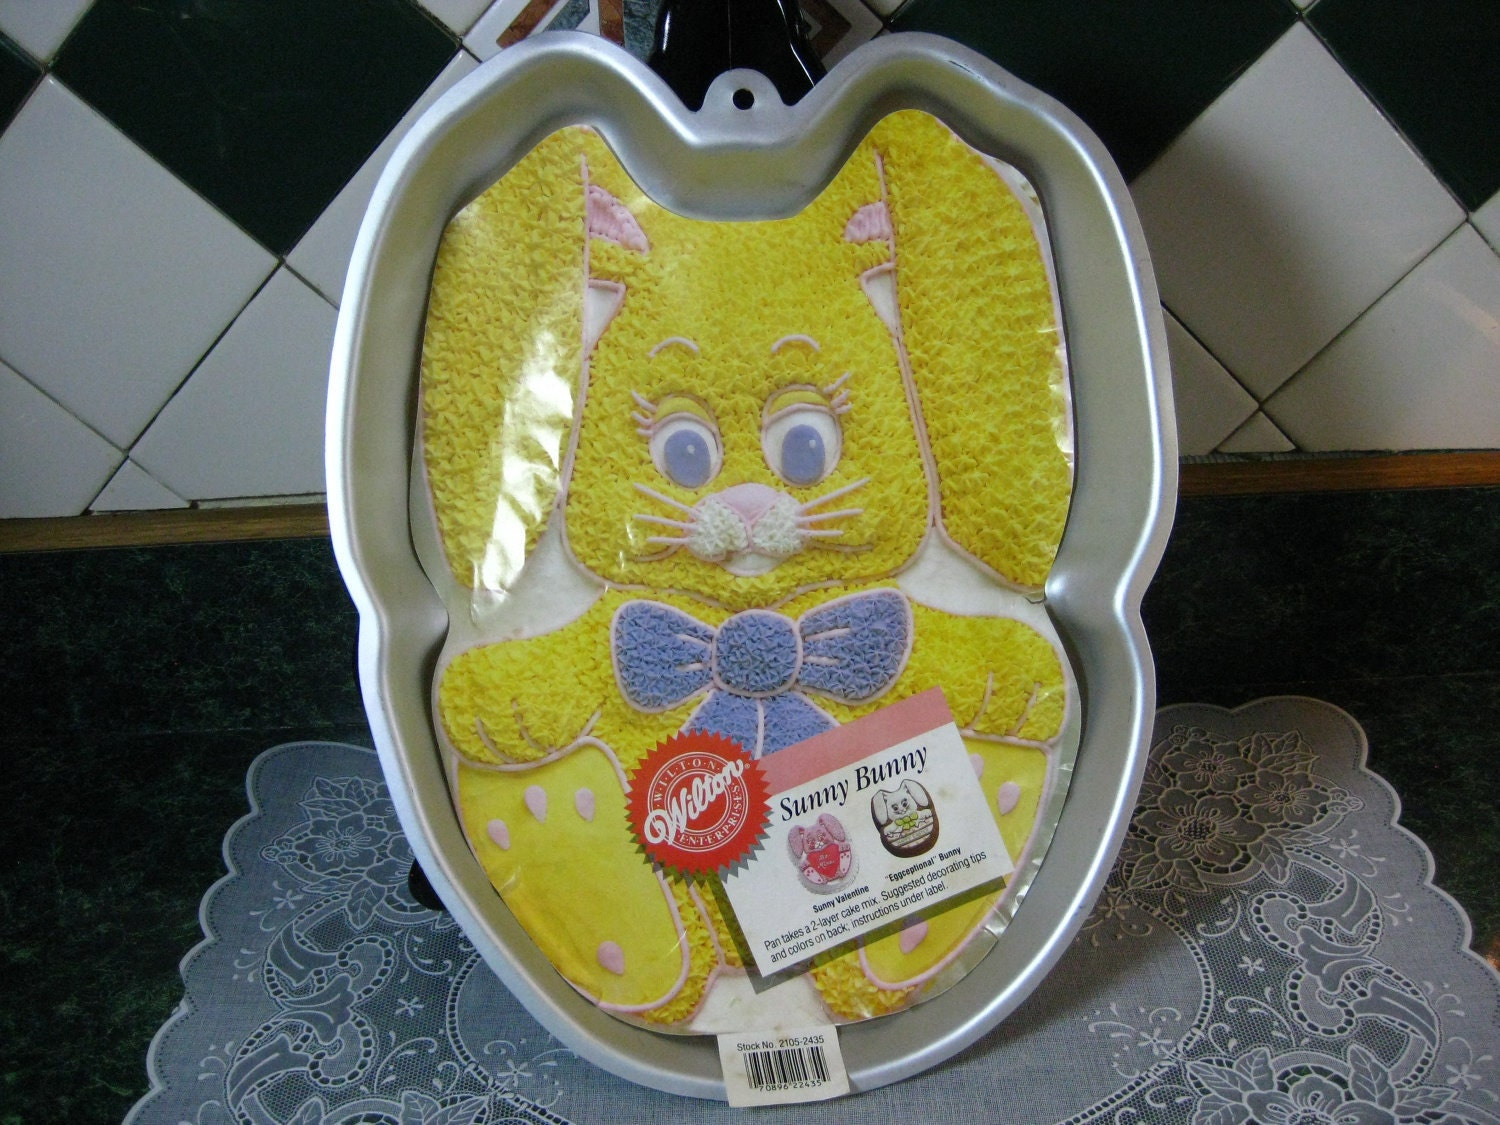 Cake Images With Name Sunny : Wilton Sunny Bunny Cake Pan Vintage Wilton Cake Pan Bunny